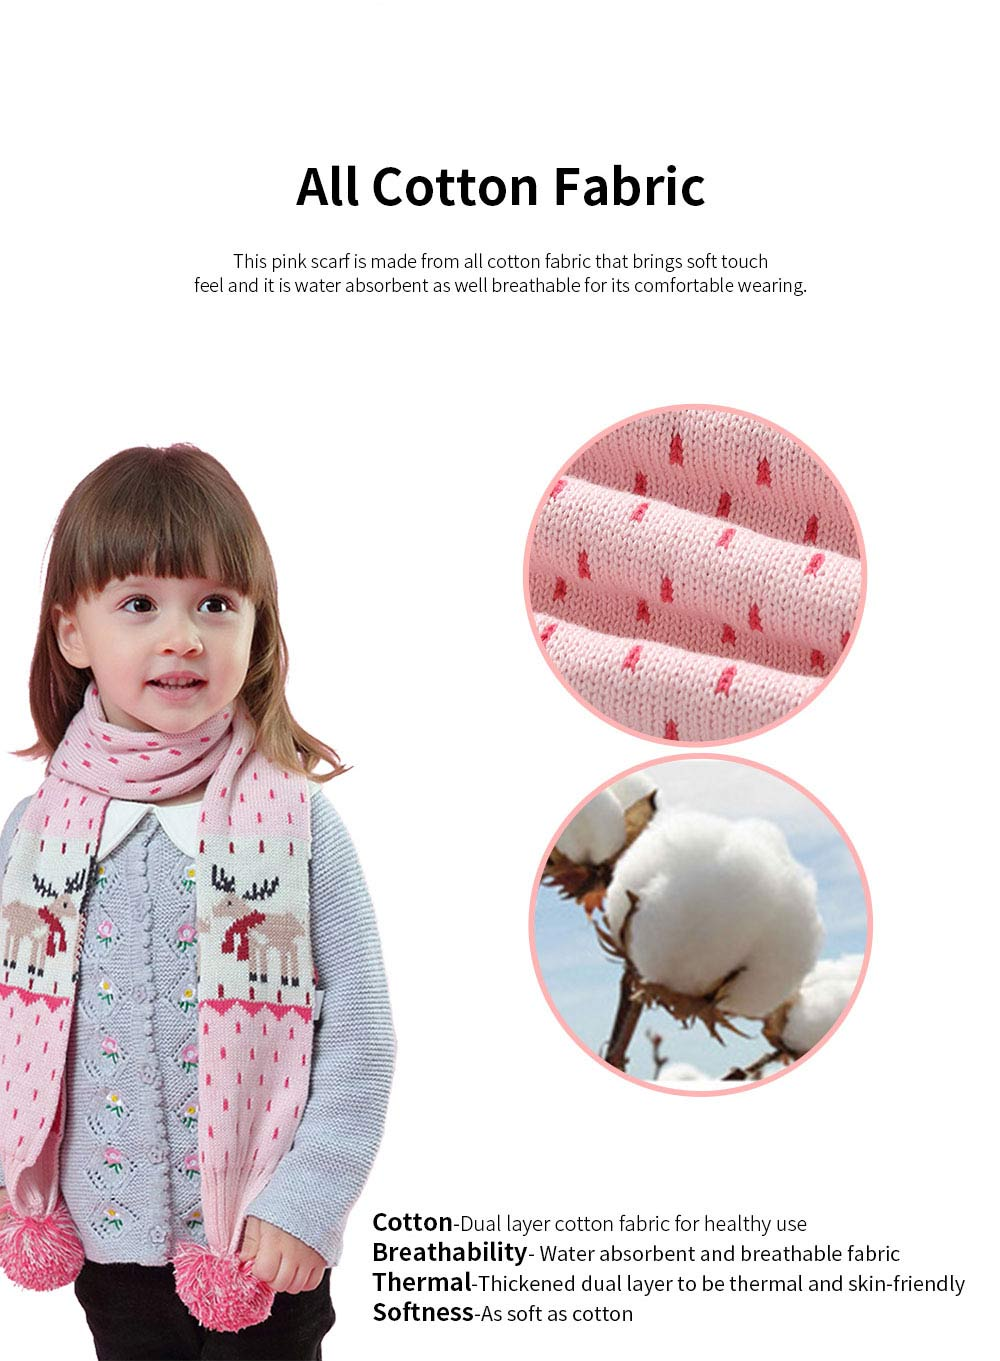 Ruhi New Style Long Scarf for Kids' Wear 100% Cotton Knitted Thermal Kid's Scarf Pink Cartoon Deer Pattern Scarf Winter Autumn 1